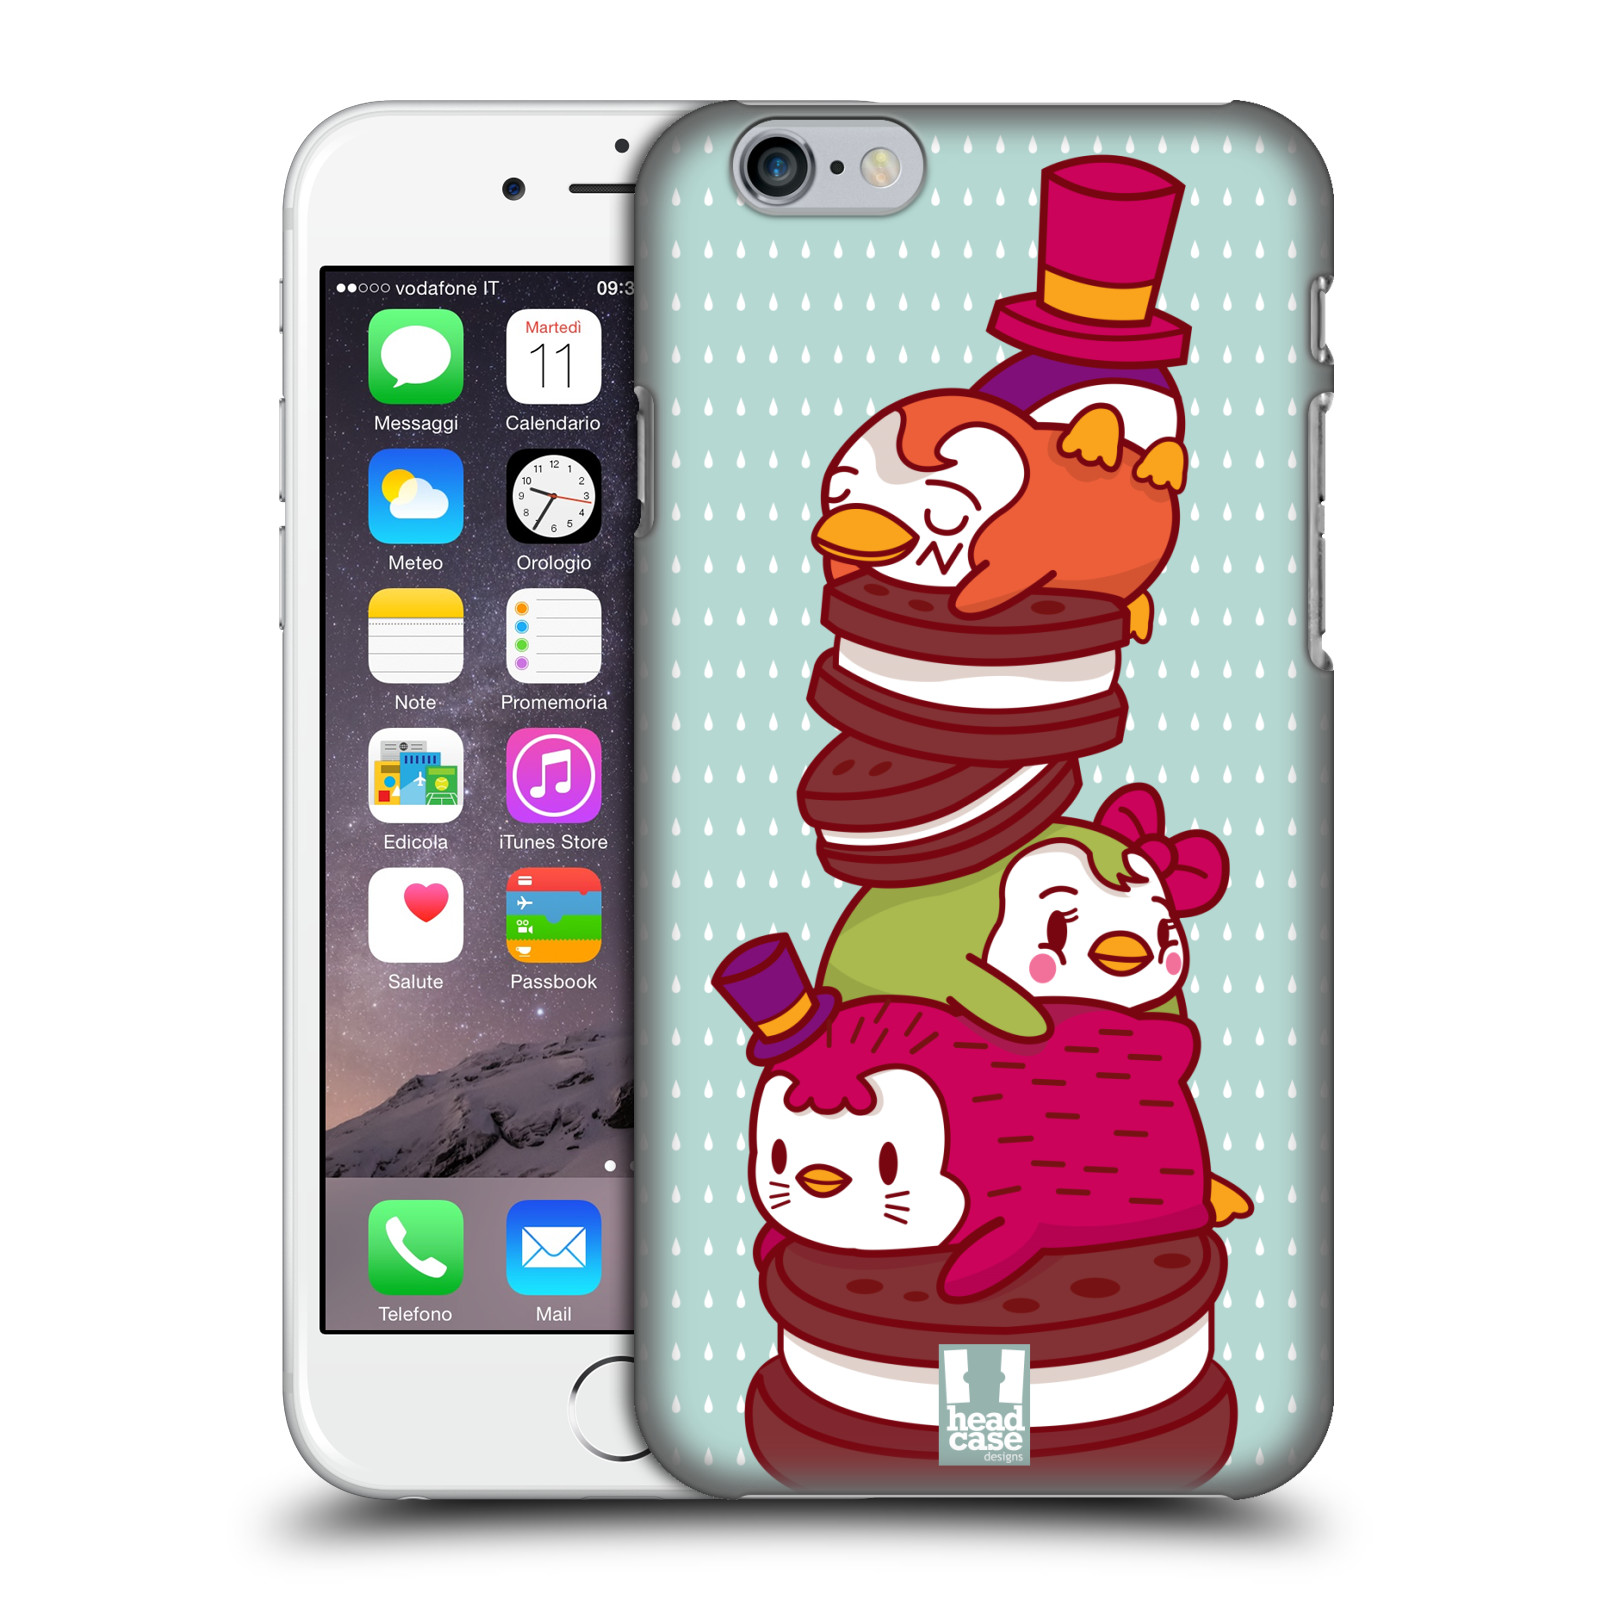 HEAD-CASE-DESIGNS-TIERE-GARNIERUNGEN-RUCKSEITE-HULLE-FUR-APPLE-iPHONE-HANDYS